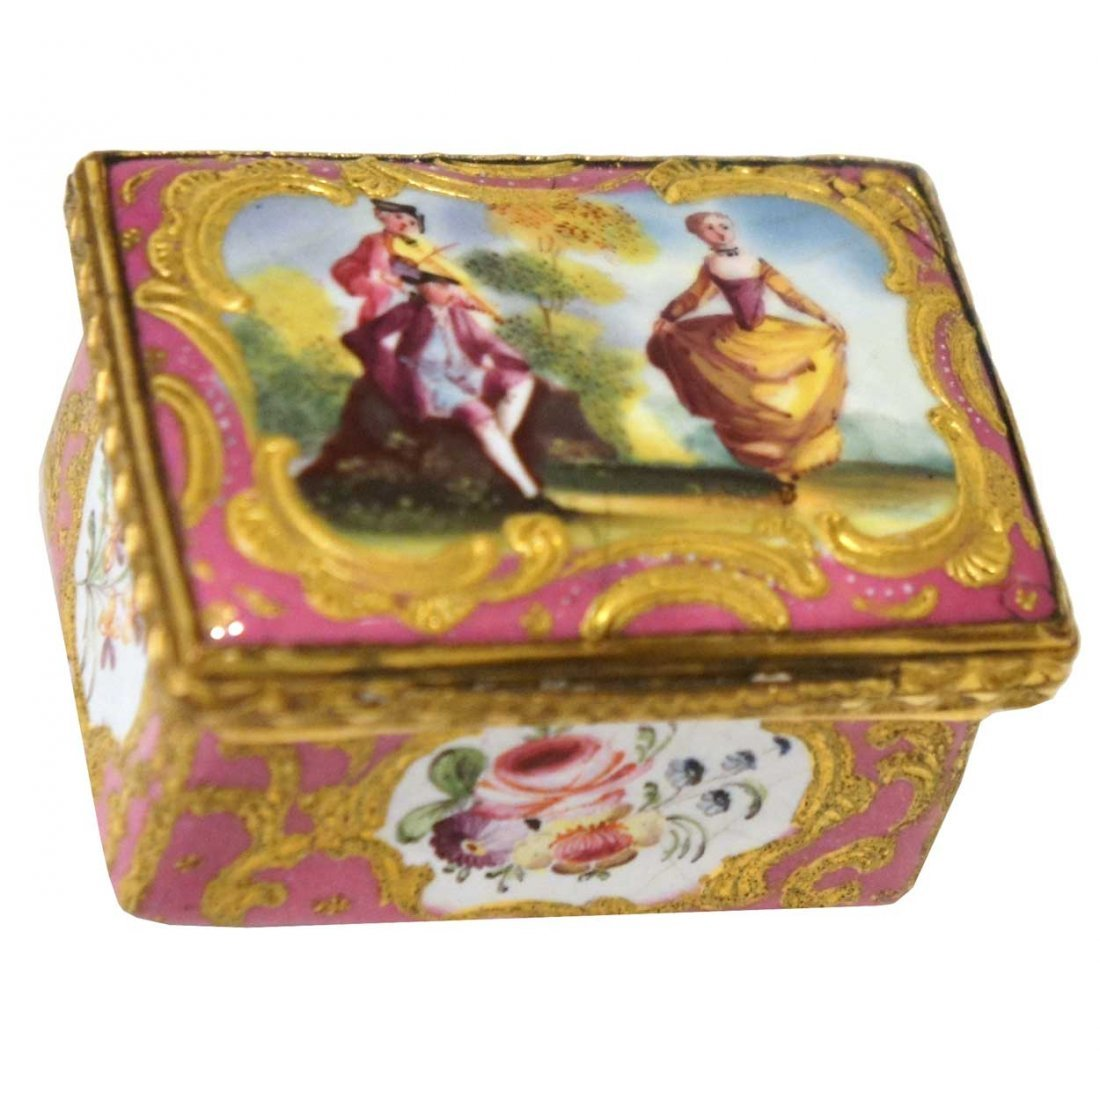 11: A Small French Enamel Patch Box, Height 1 x width 1